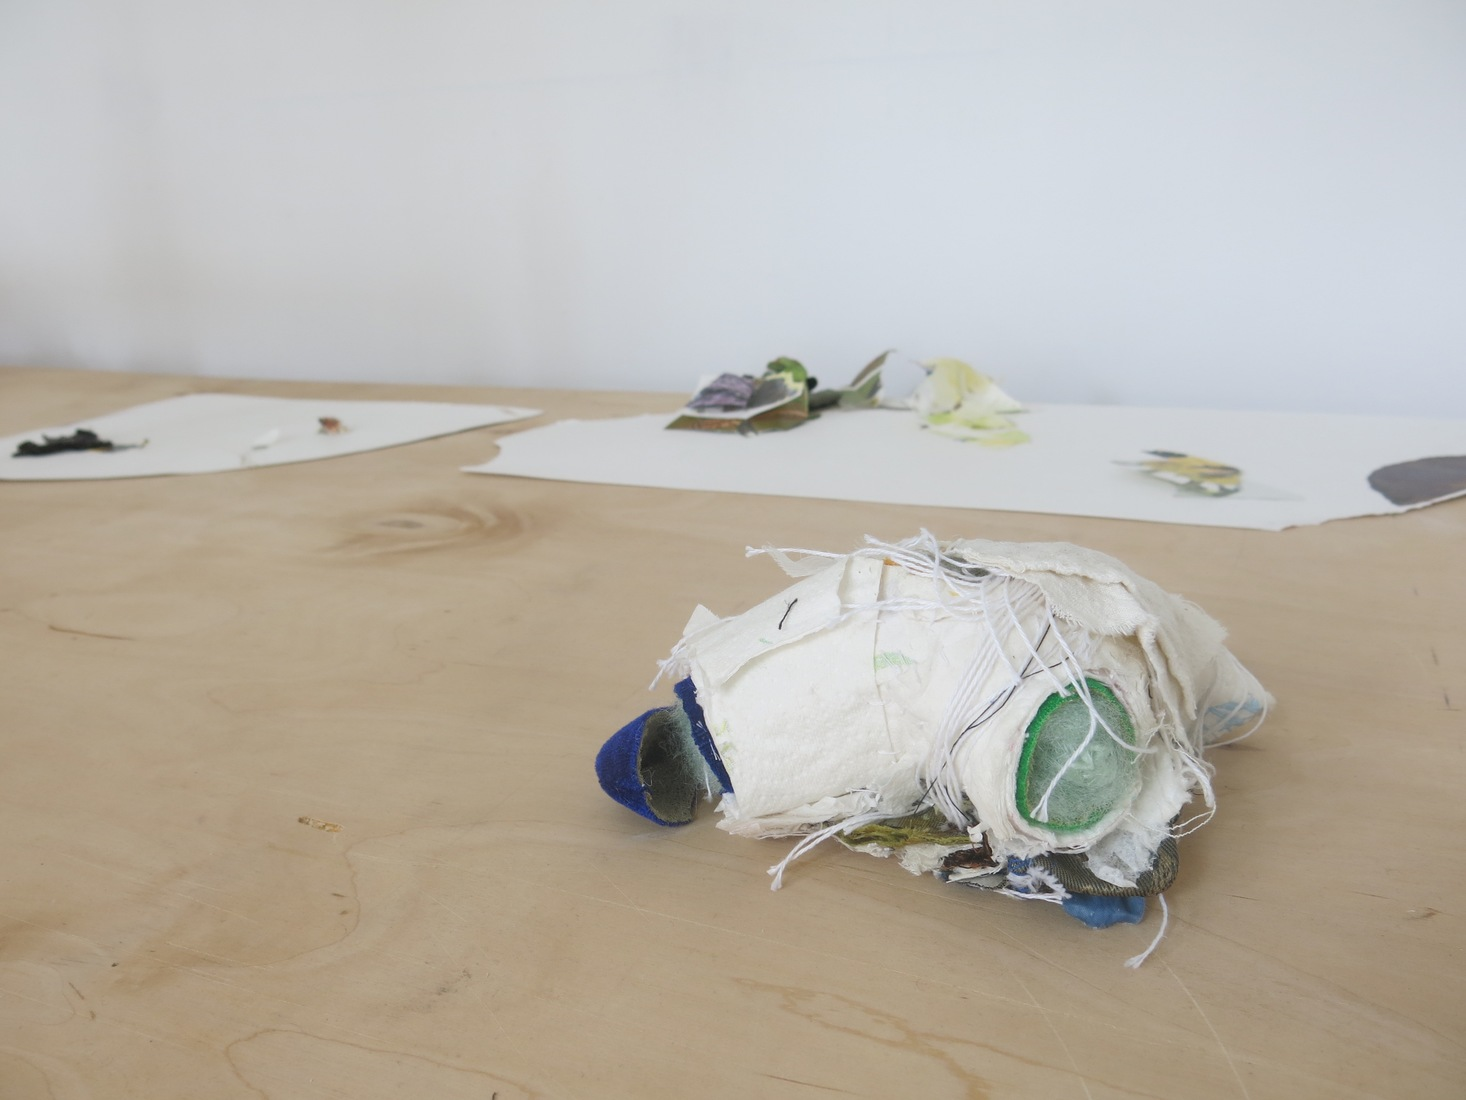 GRIDSPACE Linda Geary & Kathryn Spence: Never Contained the Landscape